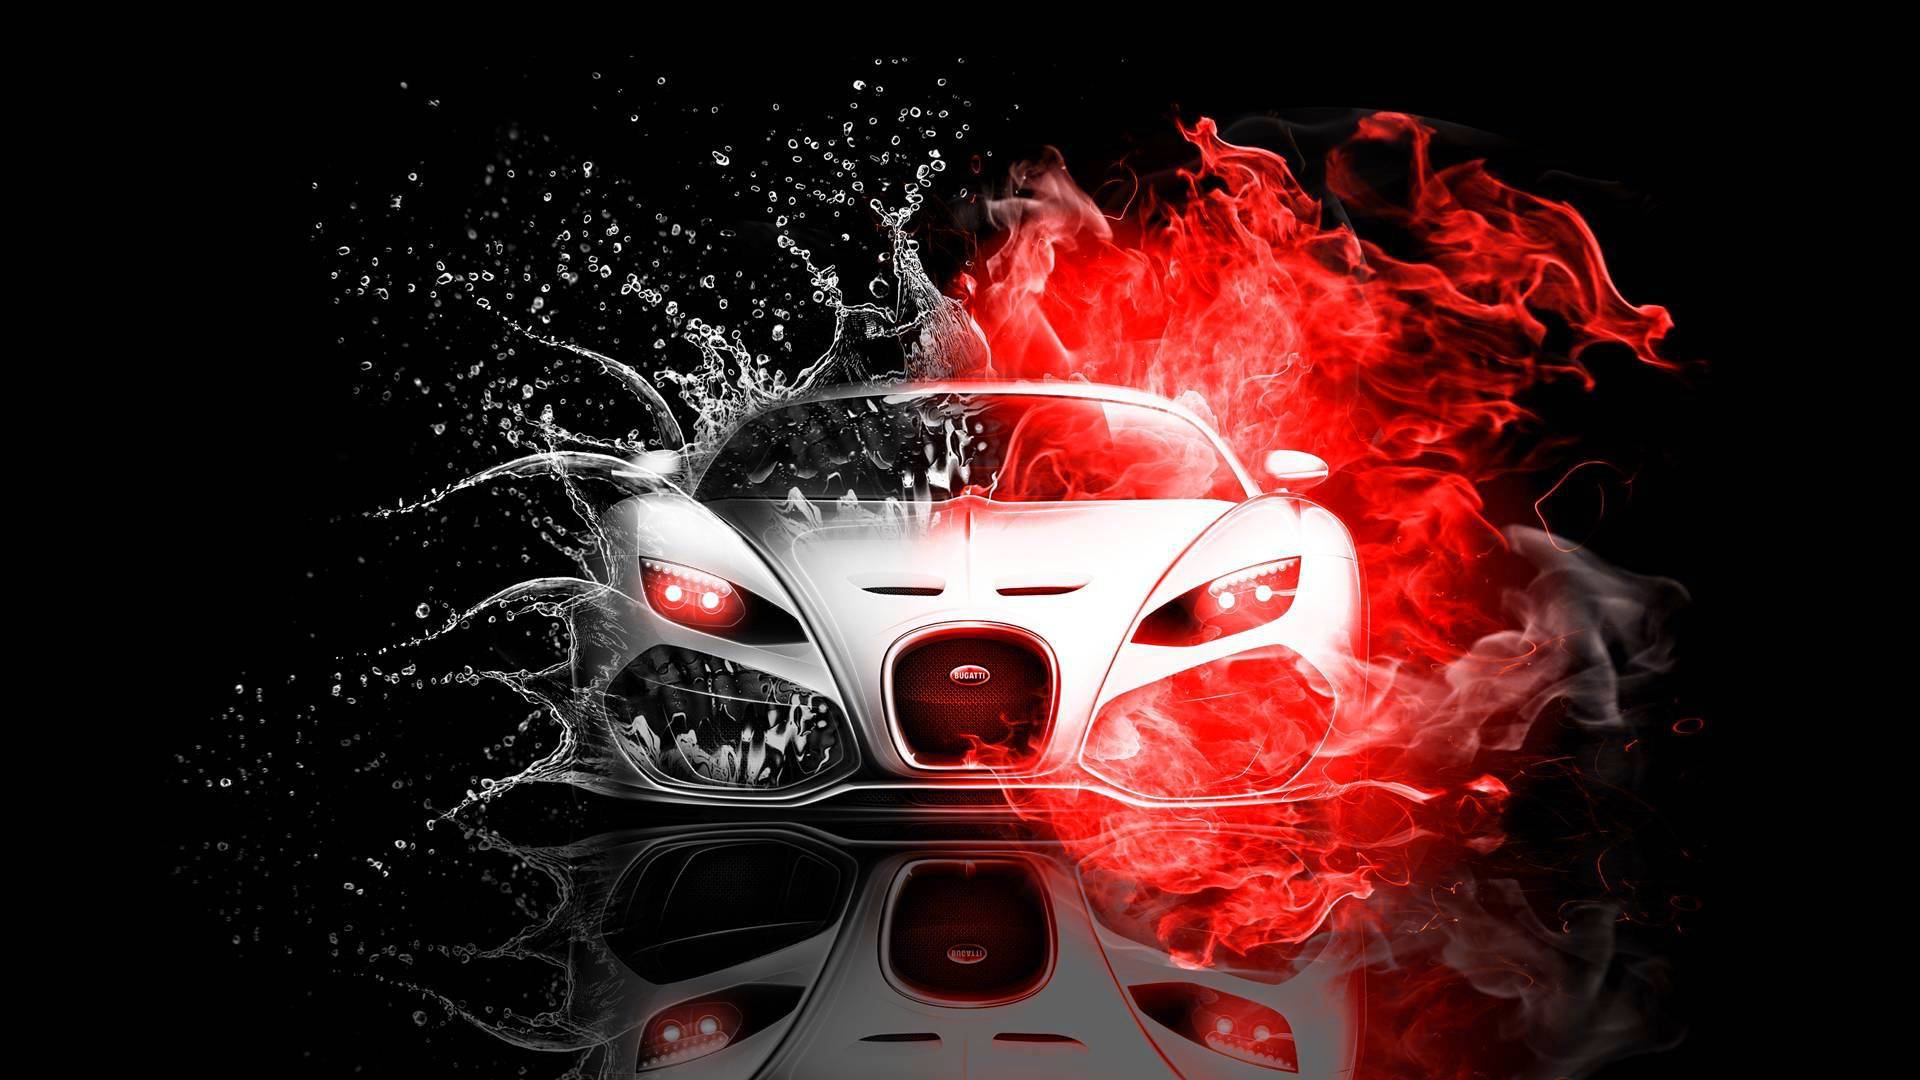 Fast And Furious 1 Cars Wallpapers Black White And Red Backgrounds Wallpaper Cave